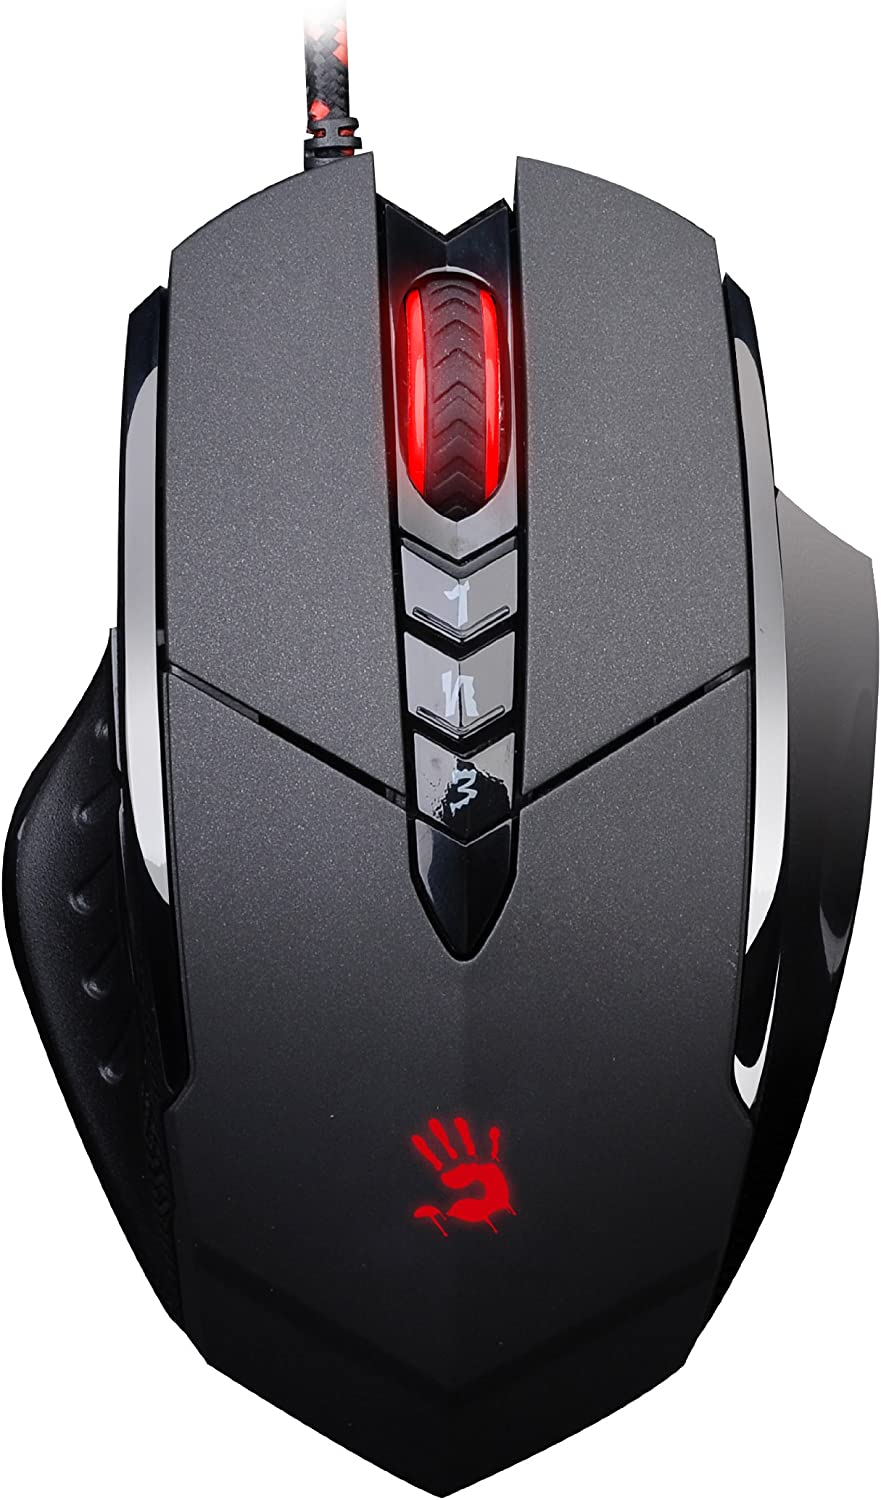 Bloody V7 Ergonomic Claw Grip Gaming Mouse with Rubberized Black Coating - Macros/Scripting/Automation - 8 Programmable Buttons - 3200 DPI